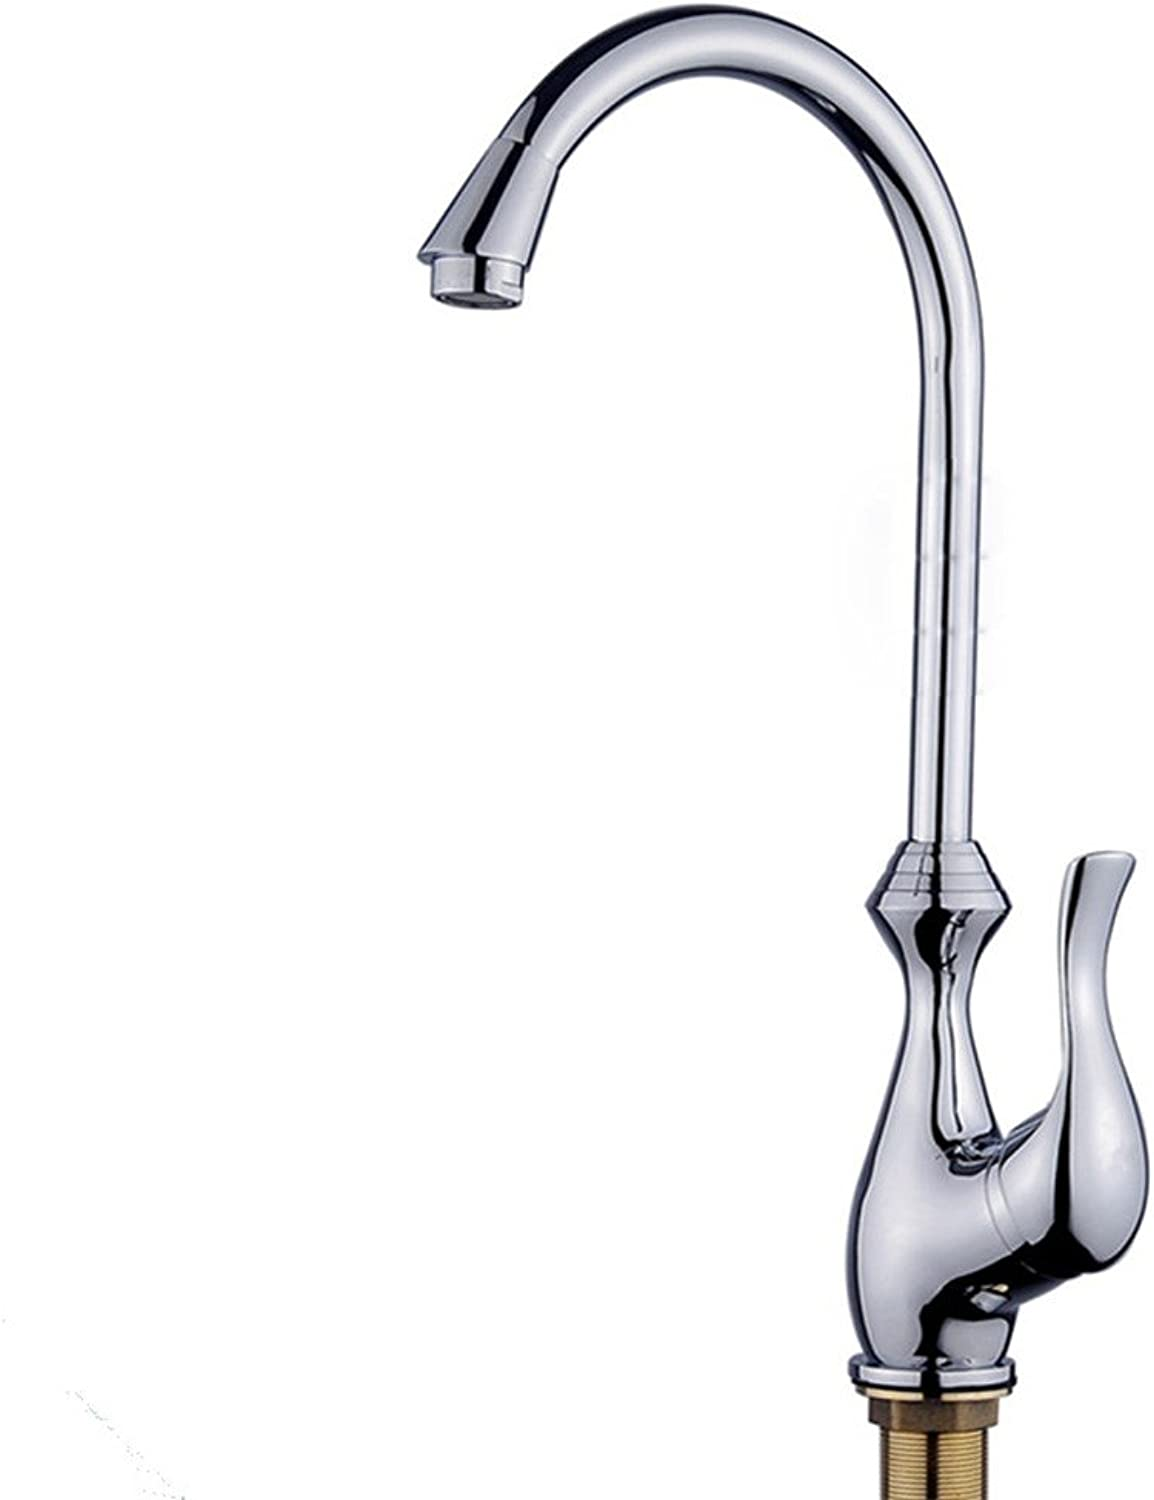 Hlluya Professional Sink Mixer Tap Kitchen Faucet All Copper Single Handle kitchen faucet, cold-hot tank Mixing Faucet